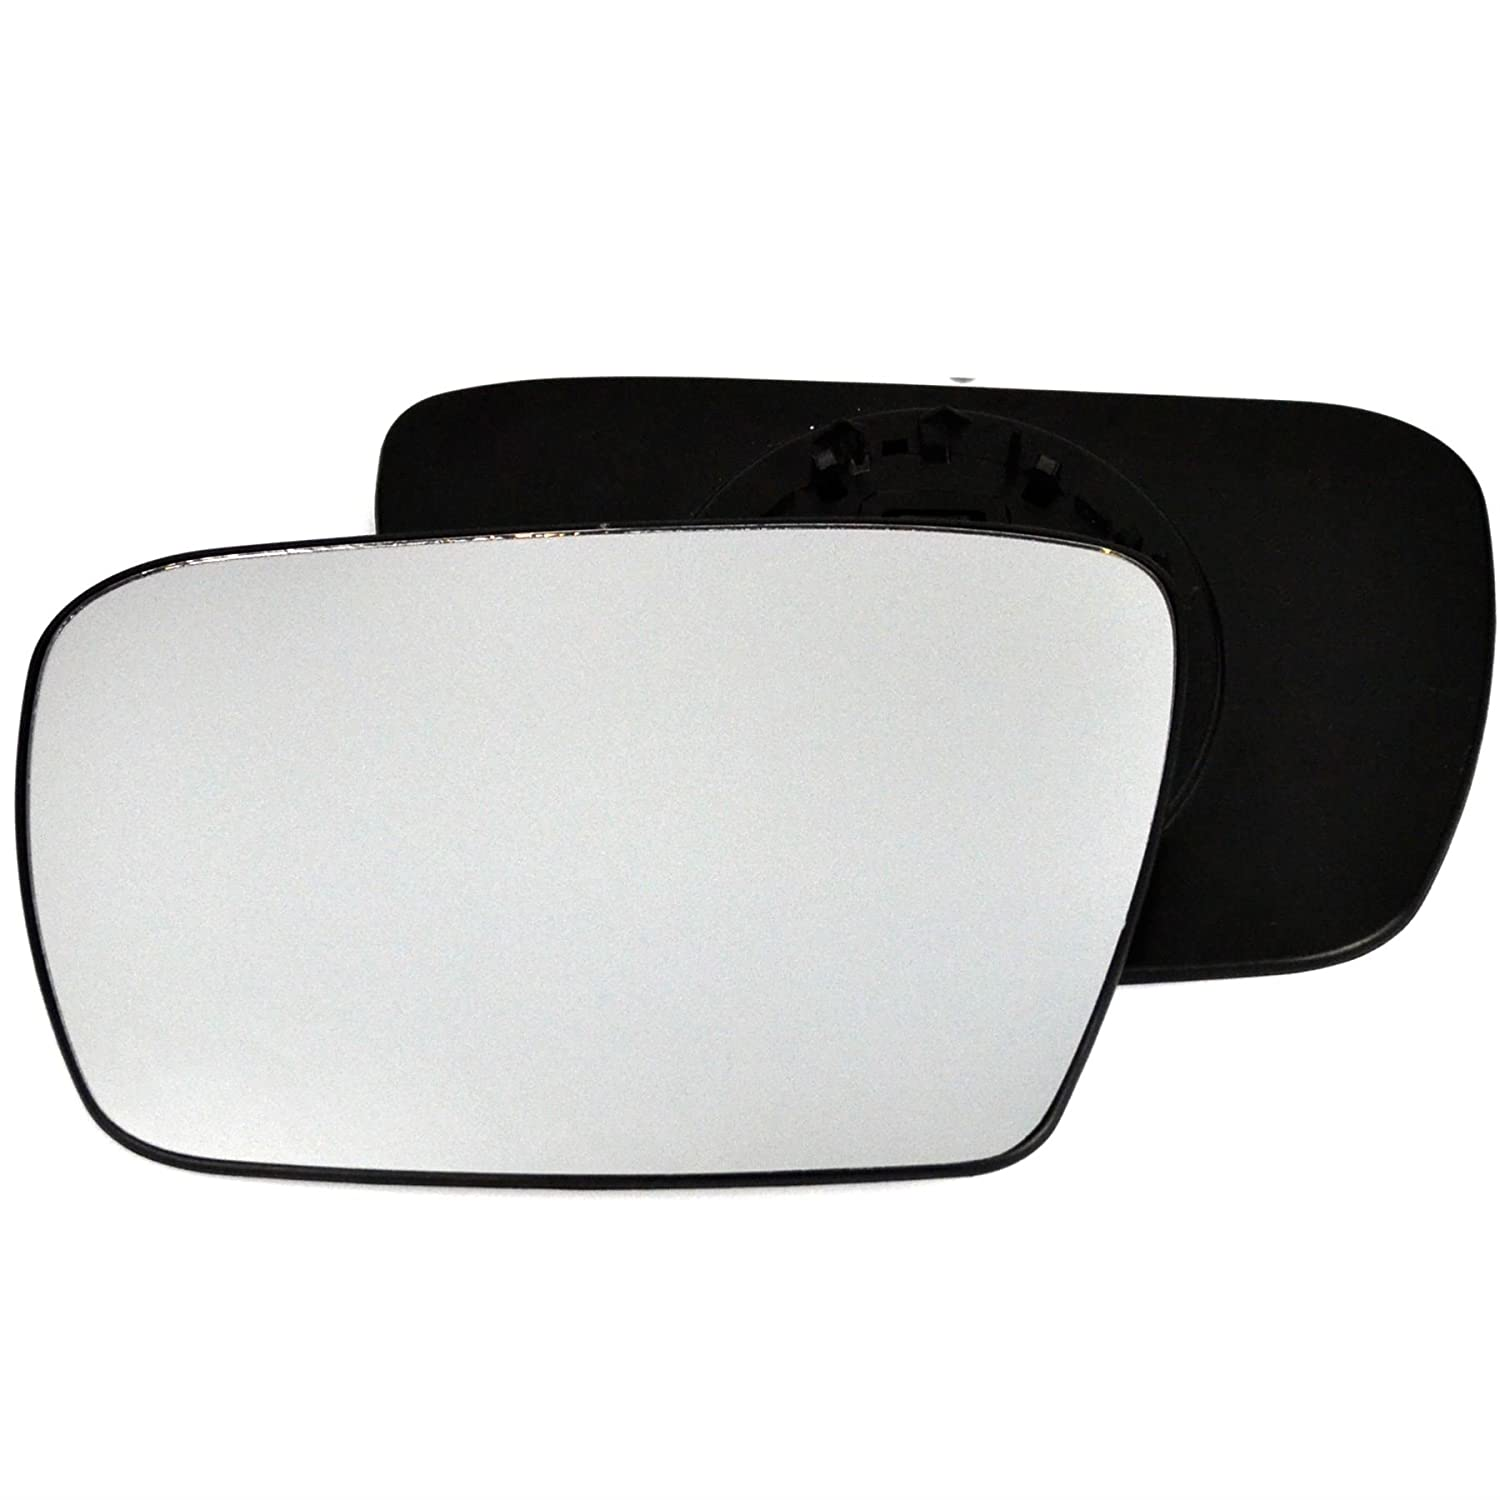 Clip On Passenger left hand side Heated wing door Silver mirror glass with backing plate #C-SHY//L-JPCE01